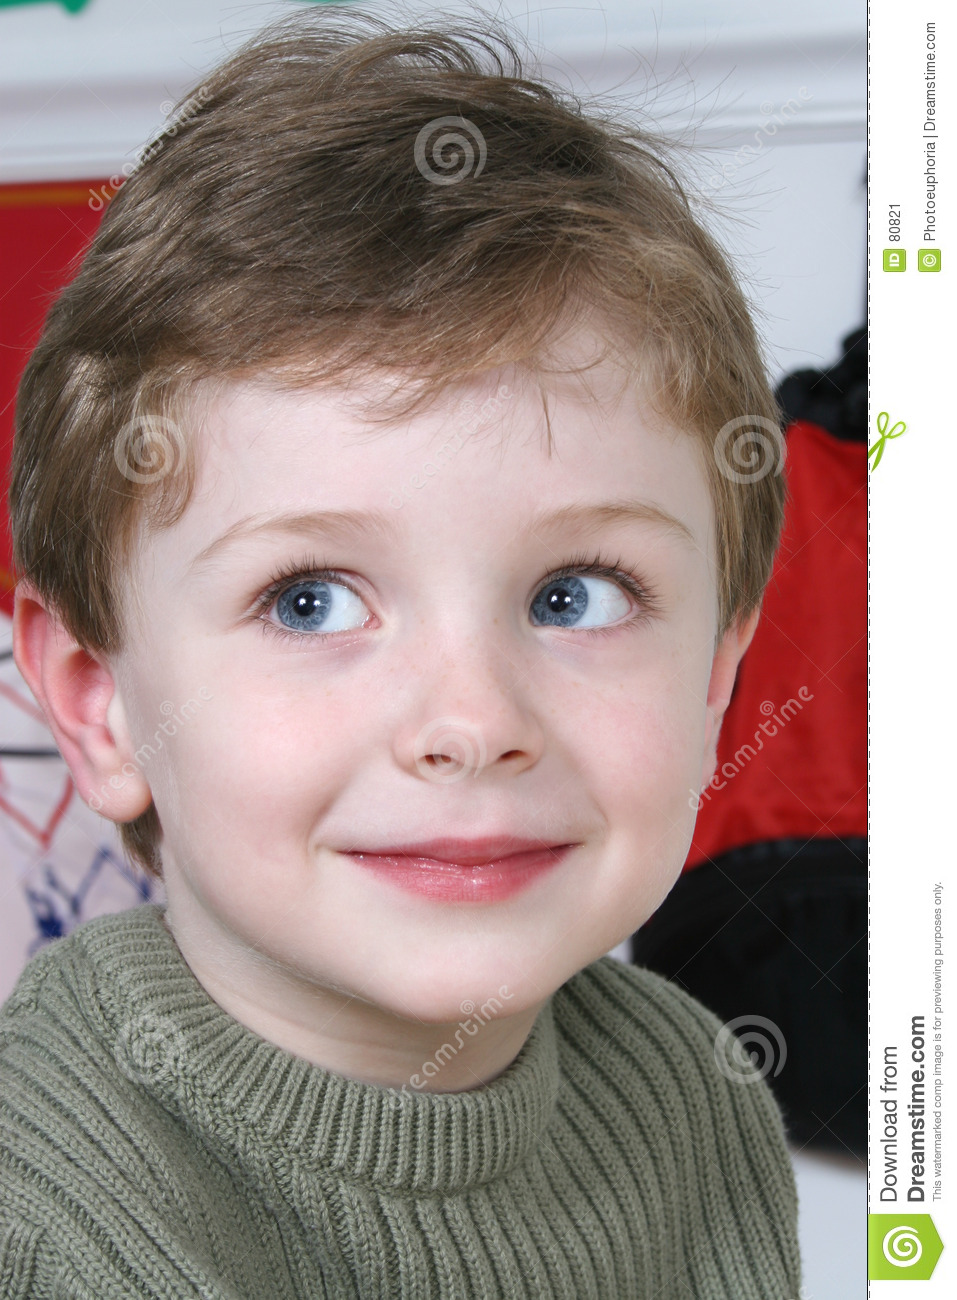 4 Year Boy Bedroom Decorating Ideas: Adorable Four Year Old Boy With Big Blue Eyes Stock Image